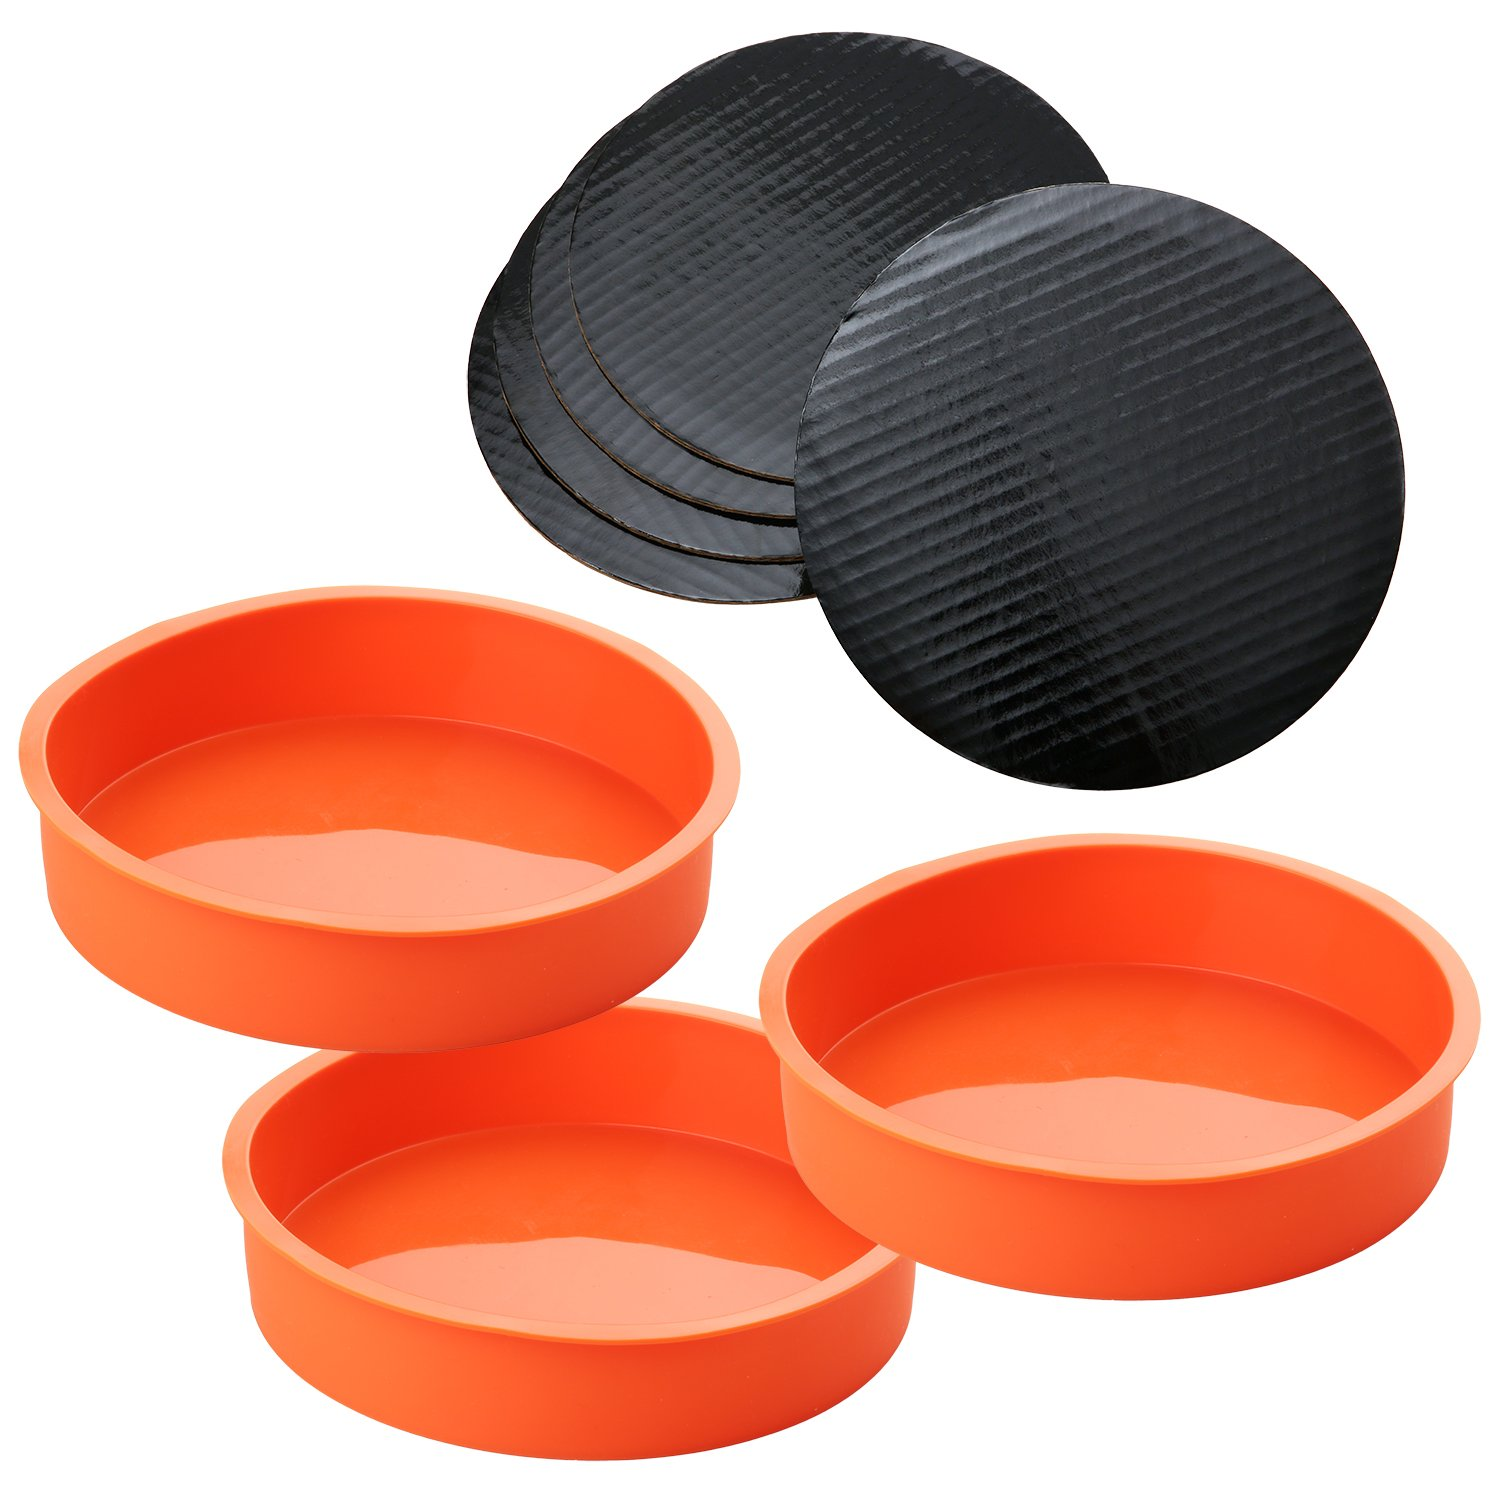 3 Piece Round Silicone 7 ¼ Inch Cake Mold Baking Pan Set, Includes 5 Laminated Greaseproof Cardboard Cake Circles by A Baker and Cook